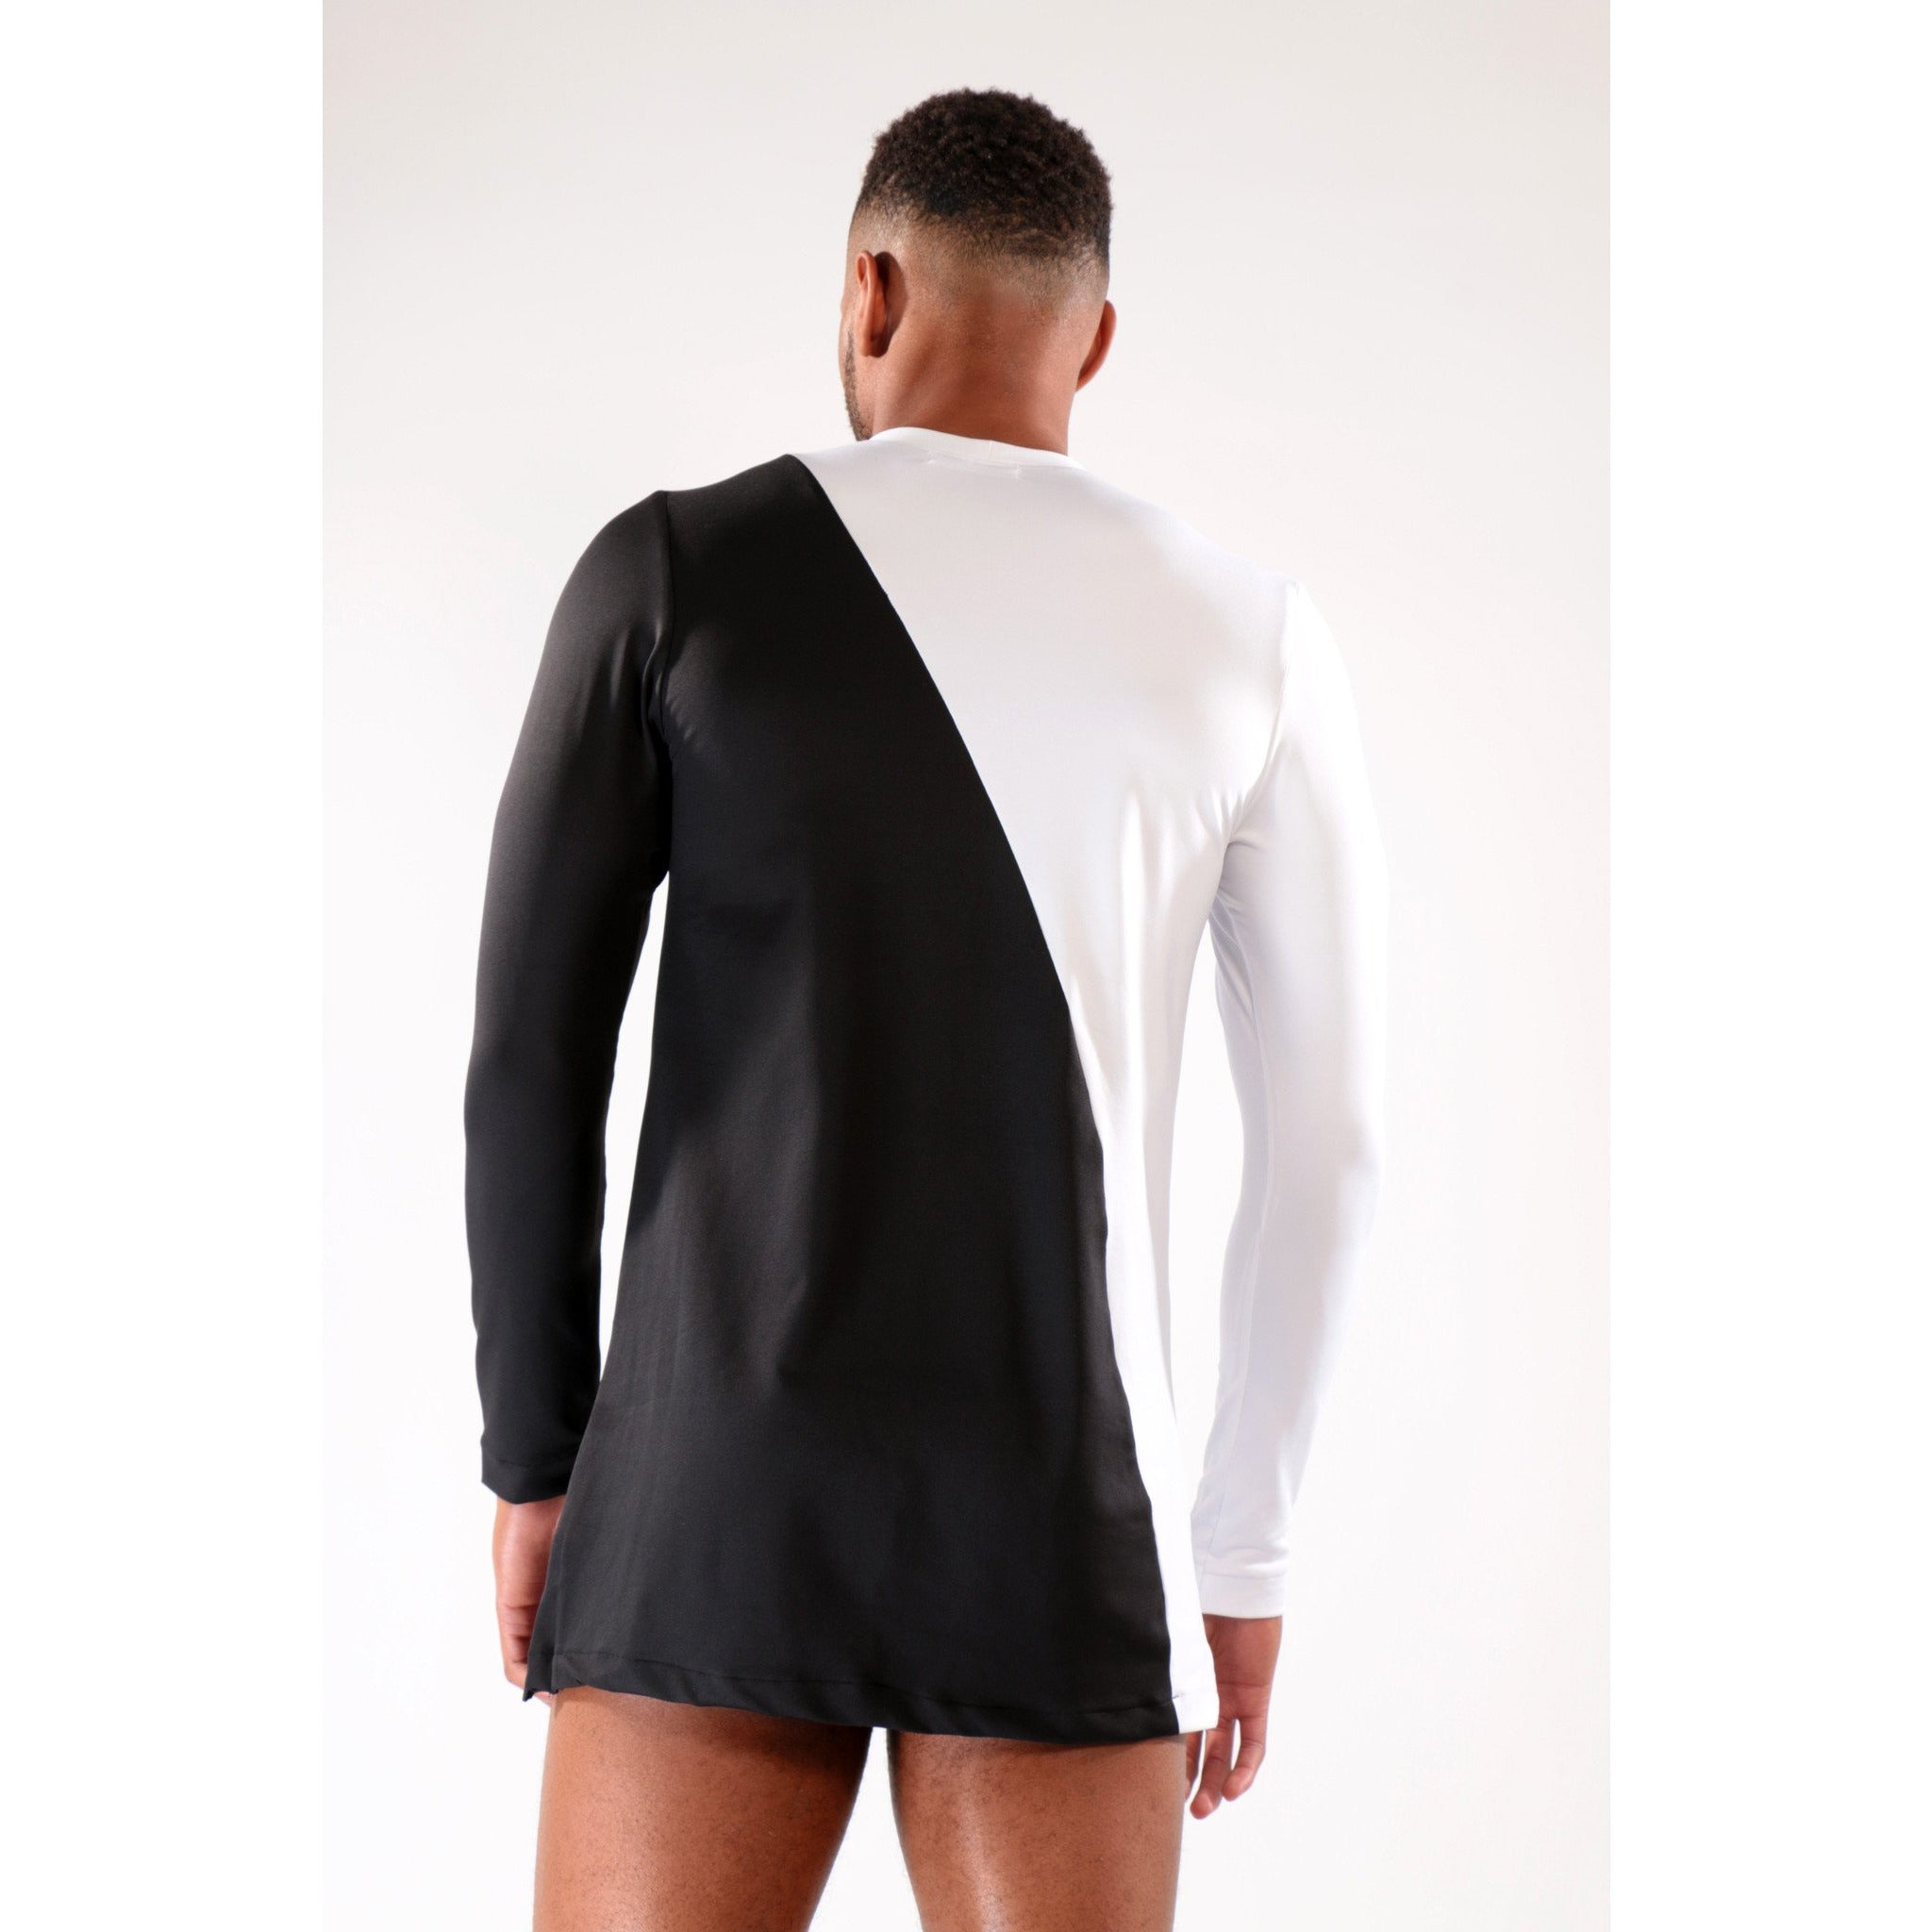 Black and White Long sleeve T-Shirt with bi-angular design